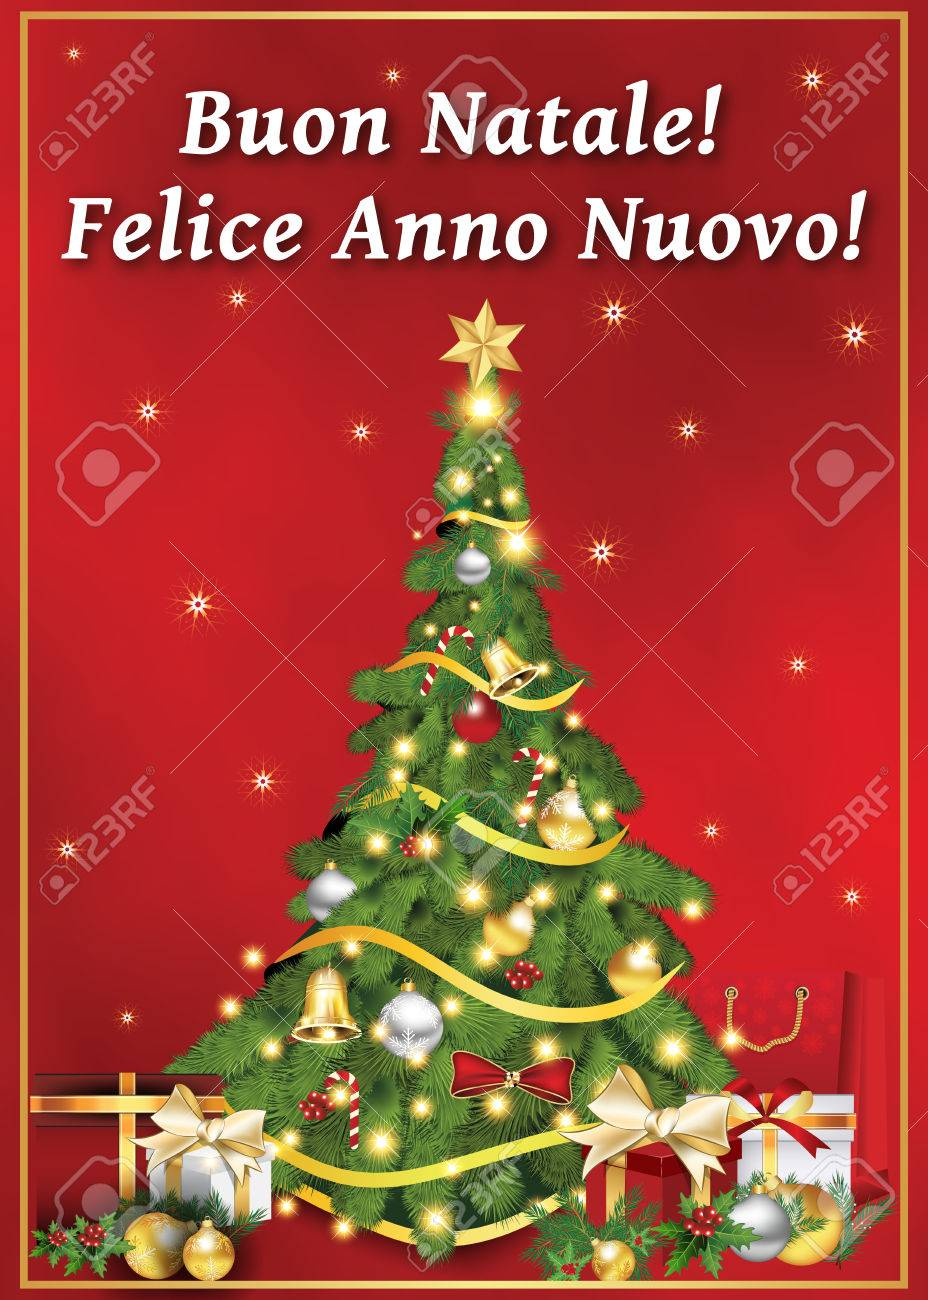 Buon Natale Wishes Italian.Buon Natale Felice Anno Nuovo Italian Greeting Card For Winter Stock Photo Picture And Royalty Free Image Image 67598063